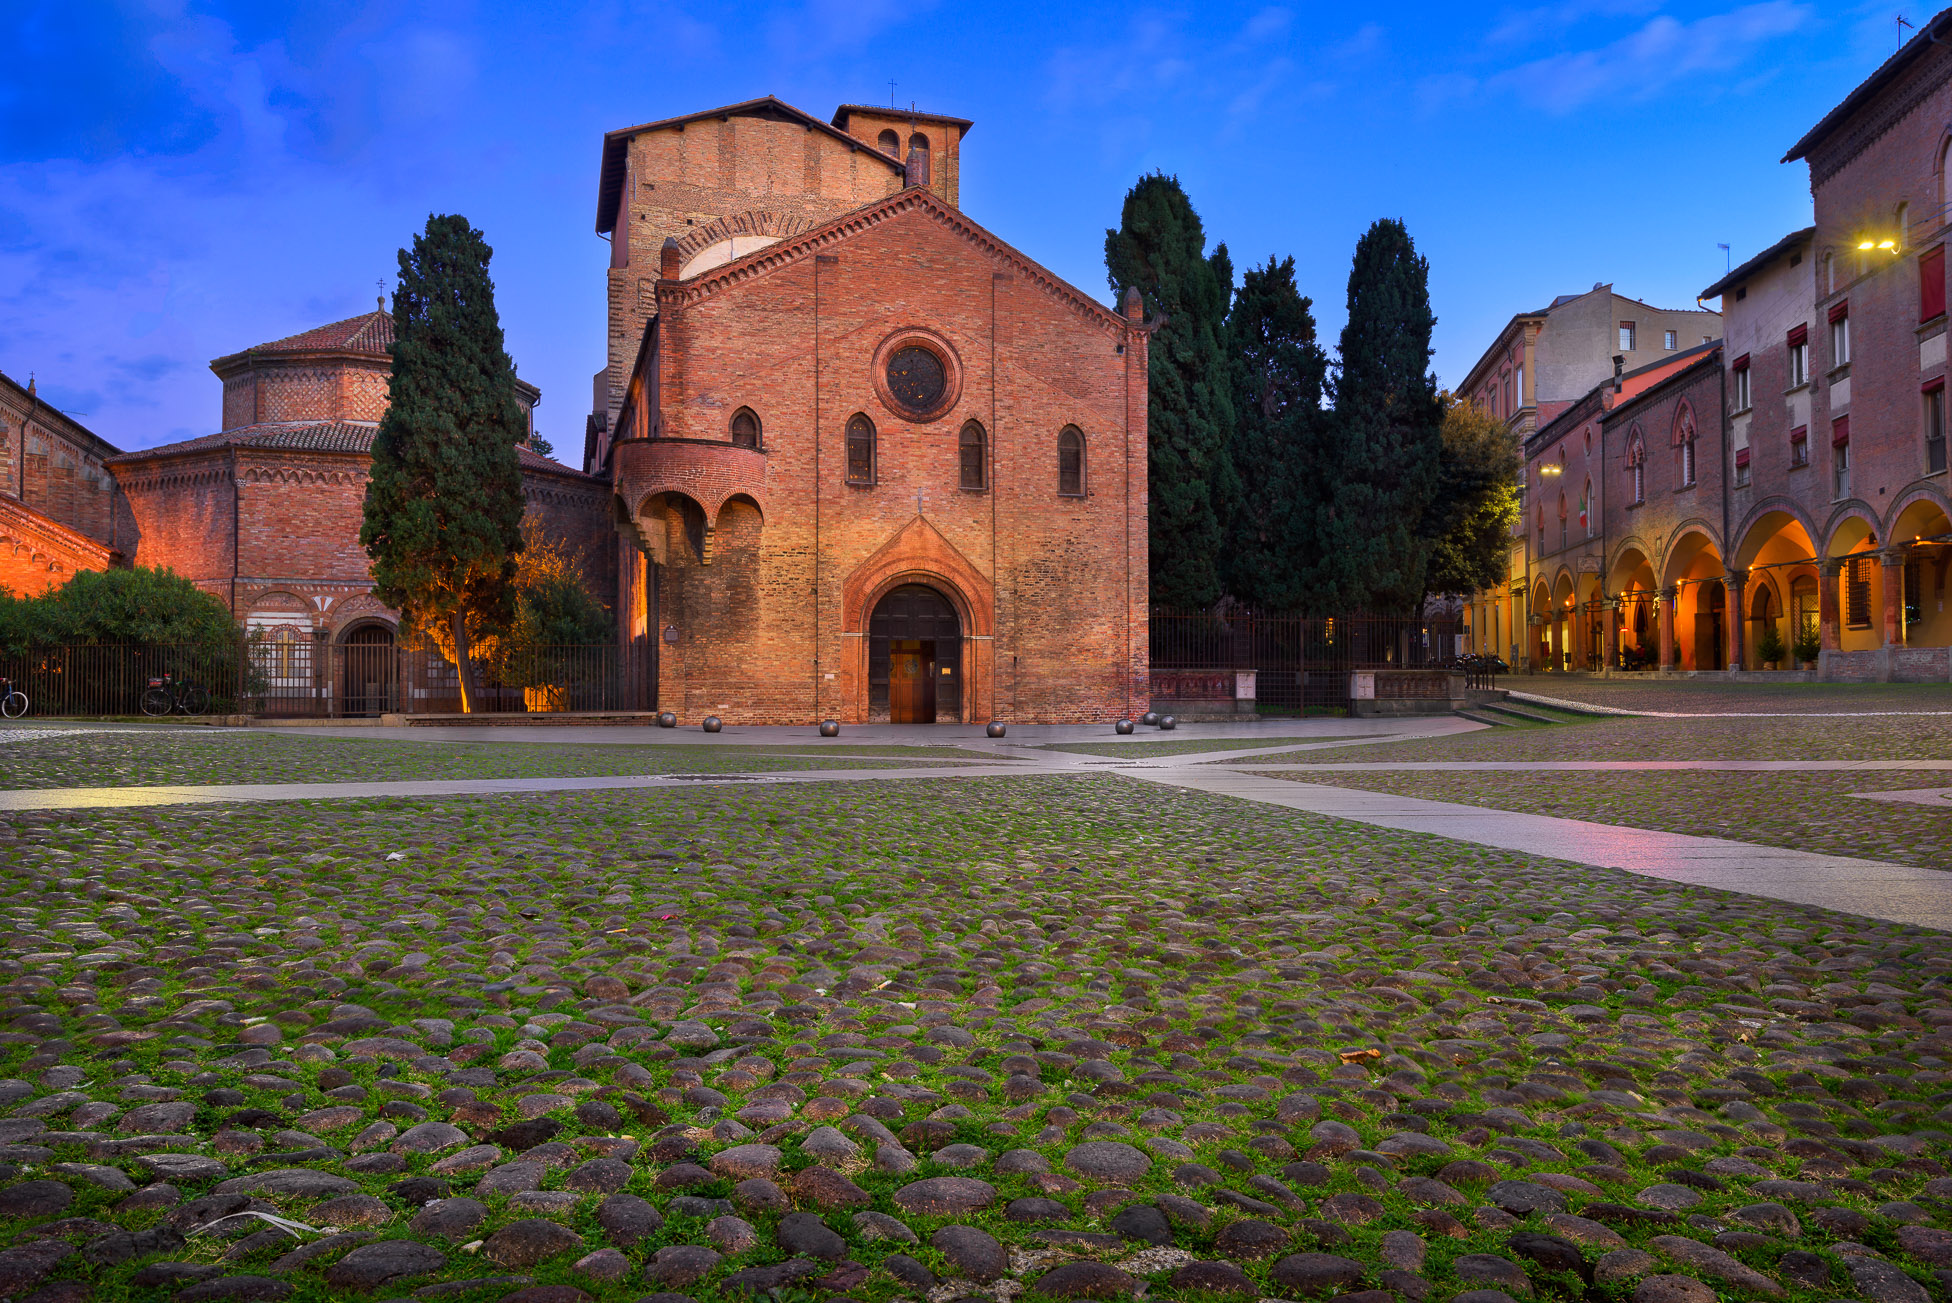 Piazza Santo Stefano in the Evening, Bologna, Emilia-Romanga, Italy